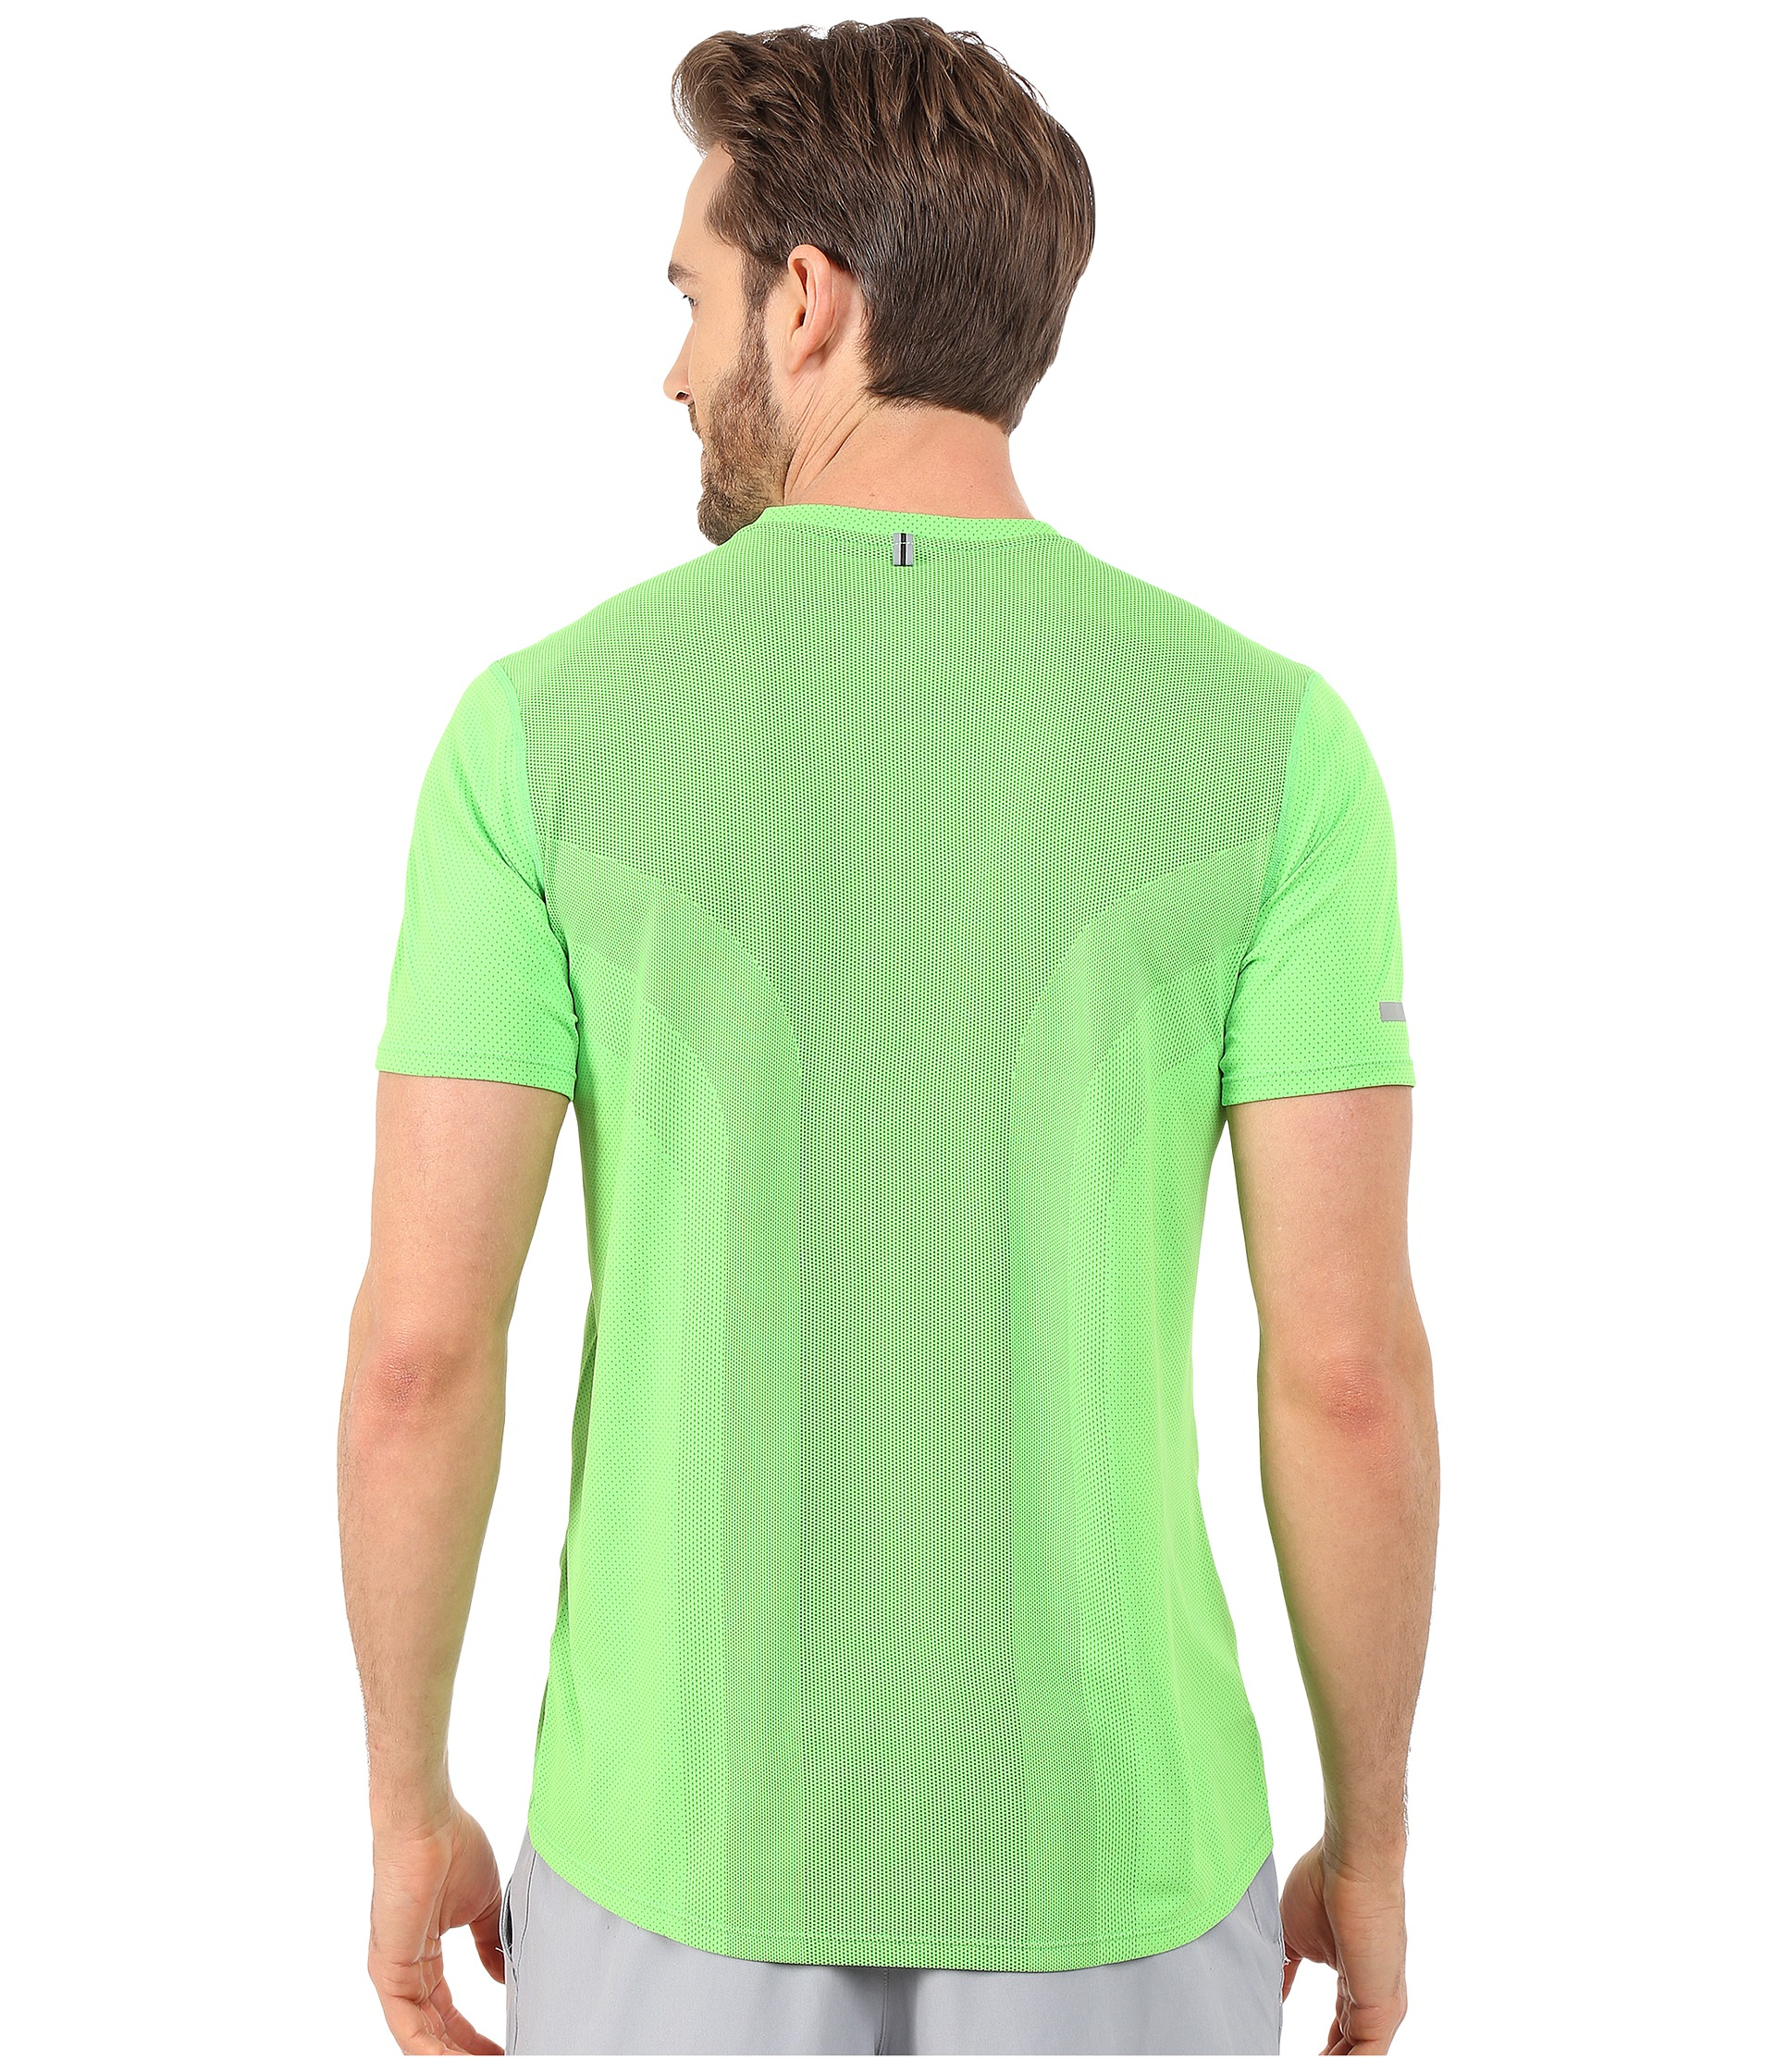 422577d87081 Lyst - Nike Dri-fit™ Contour S s Shirt in Green for Men